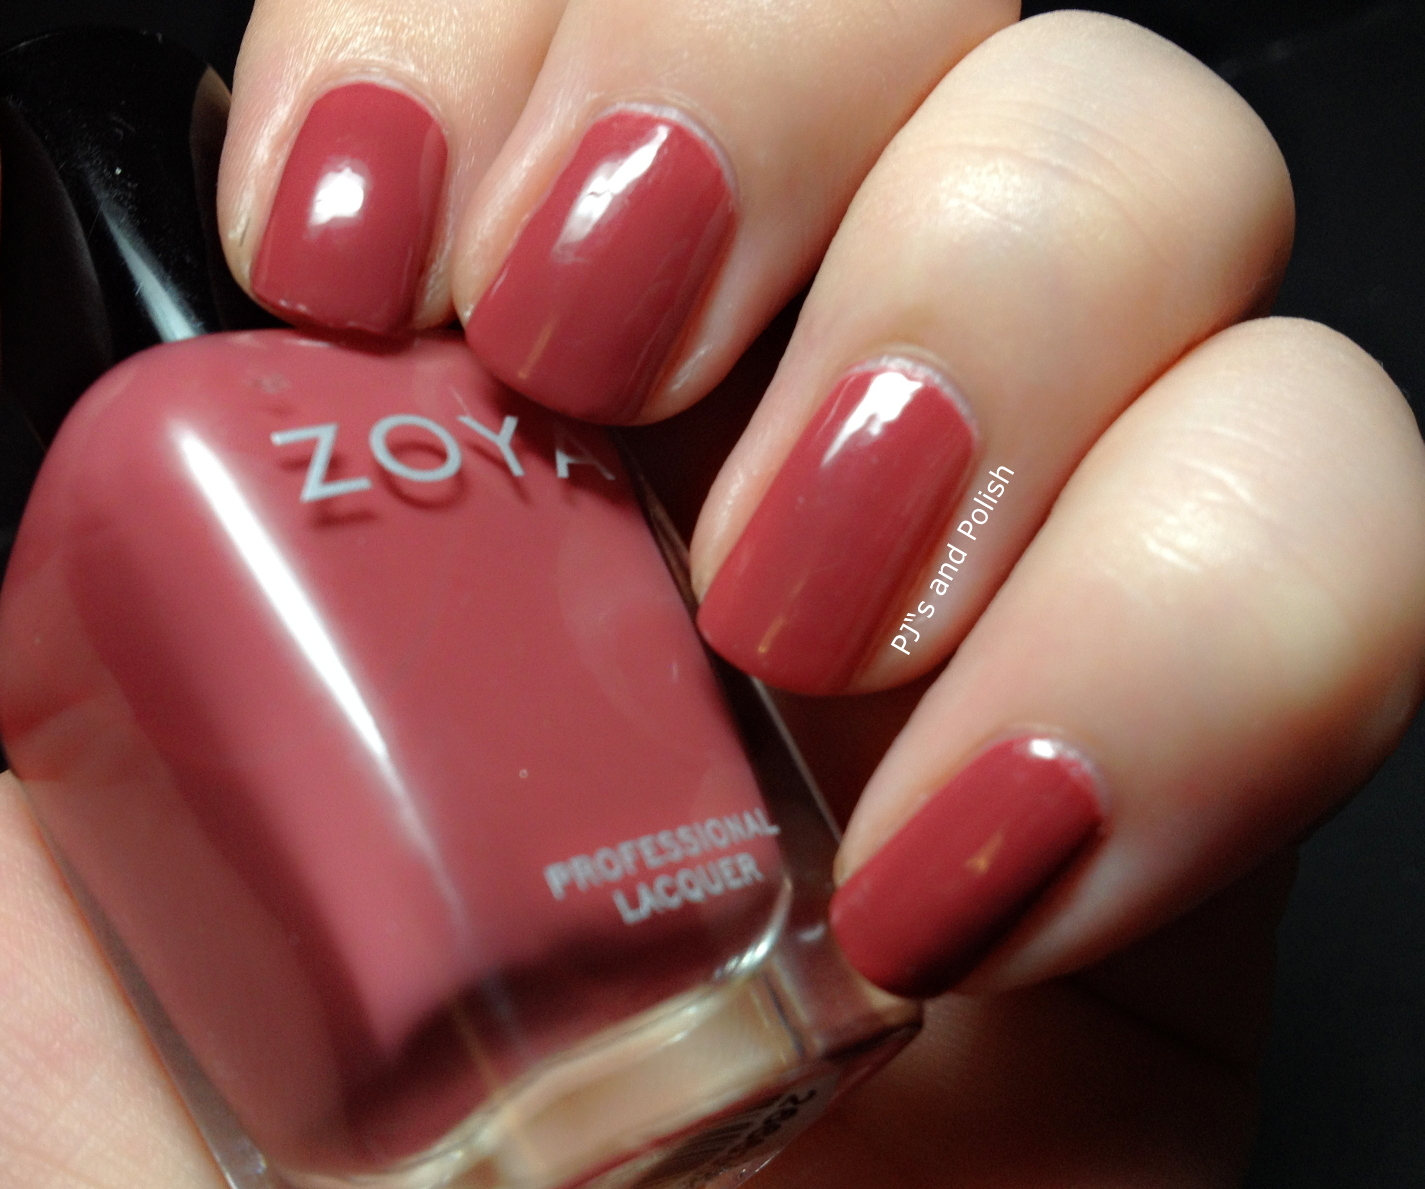 Swatch and Review Zoya Kate HK Girl